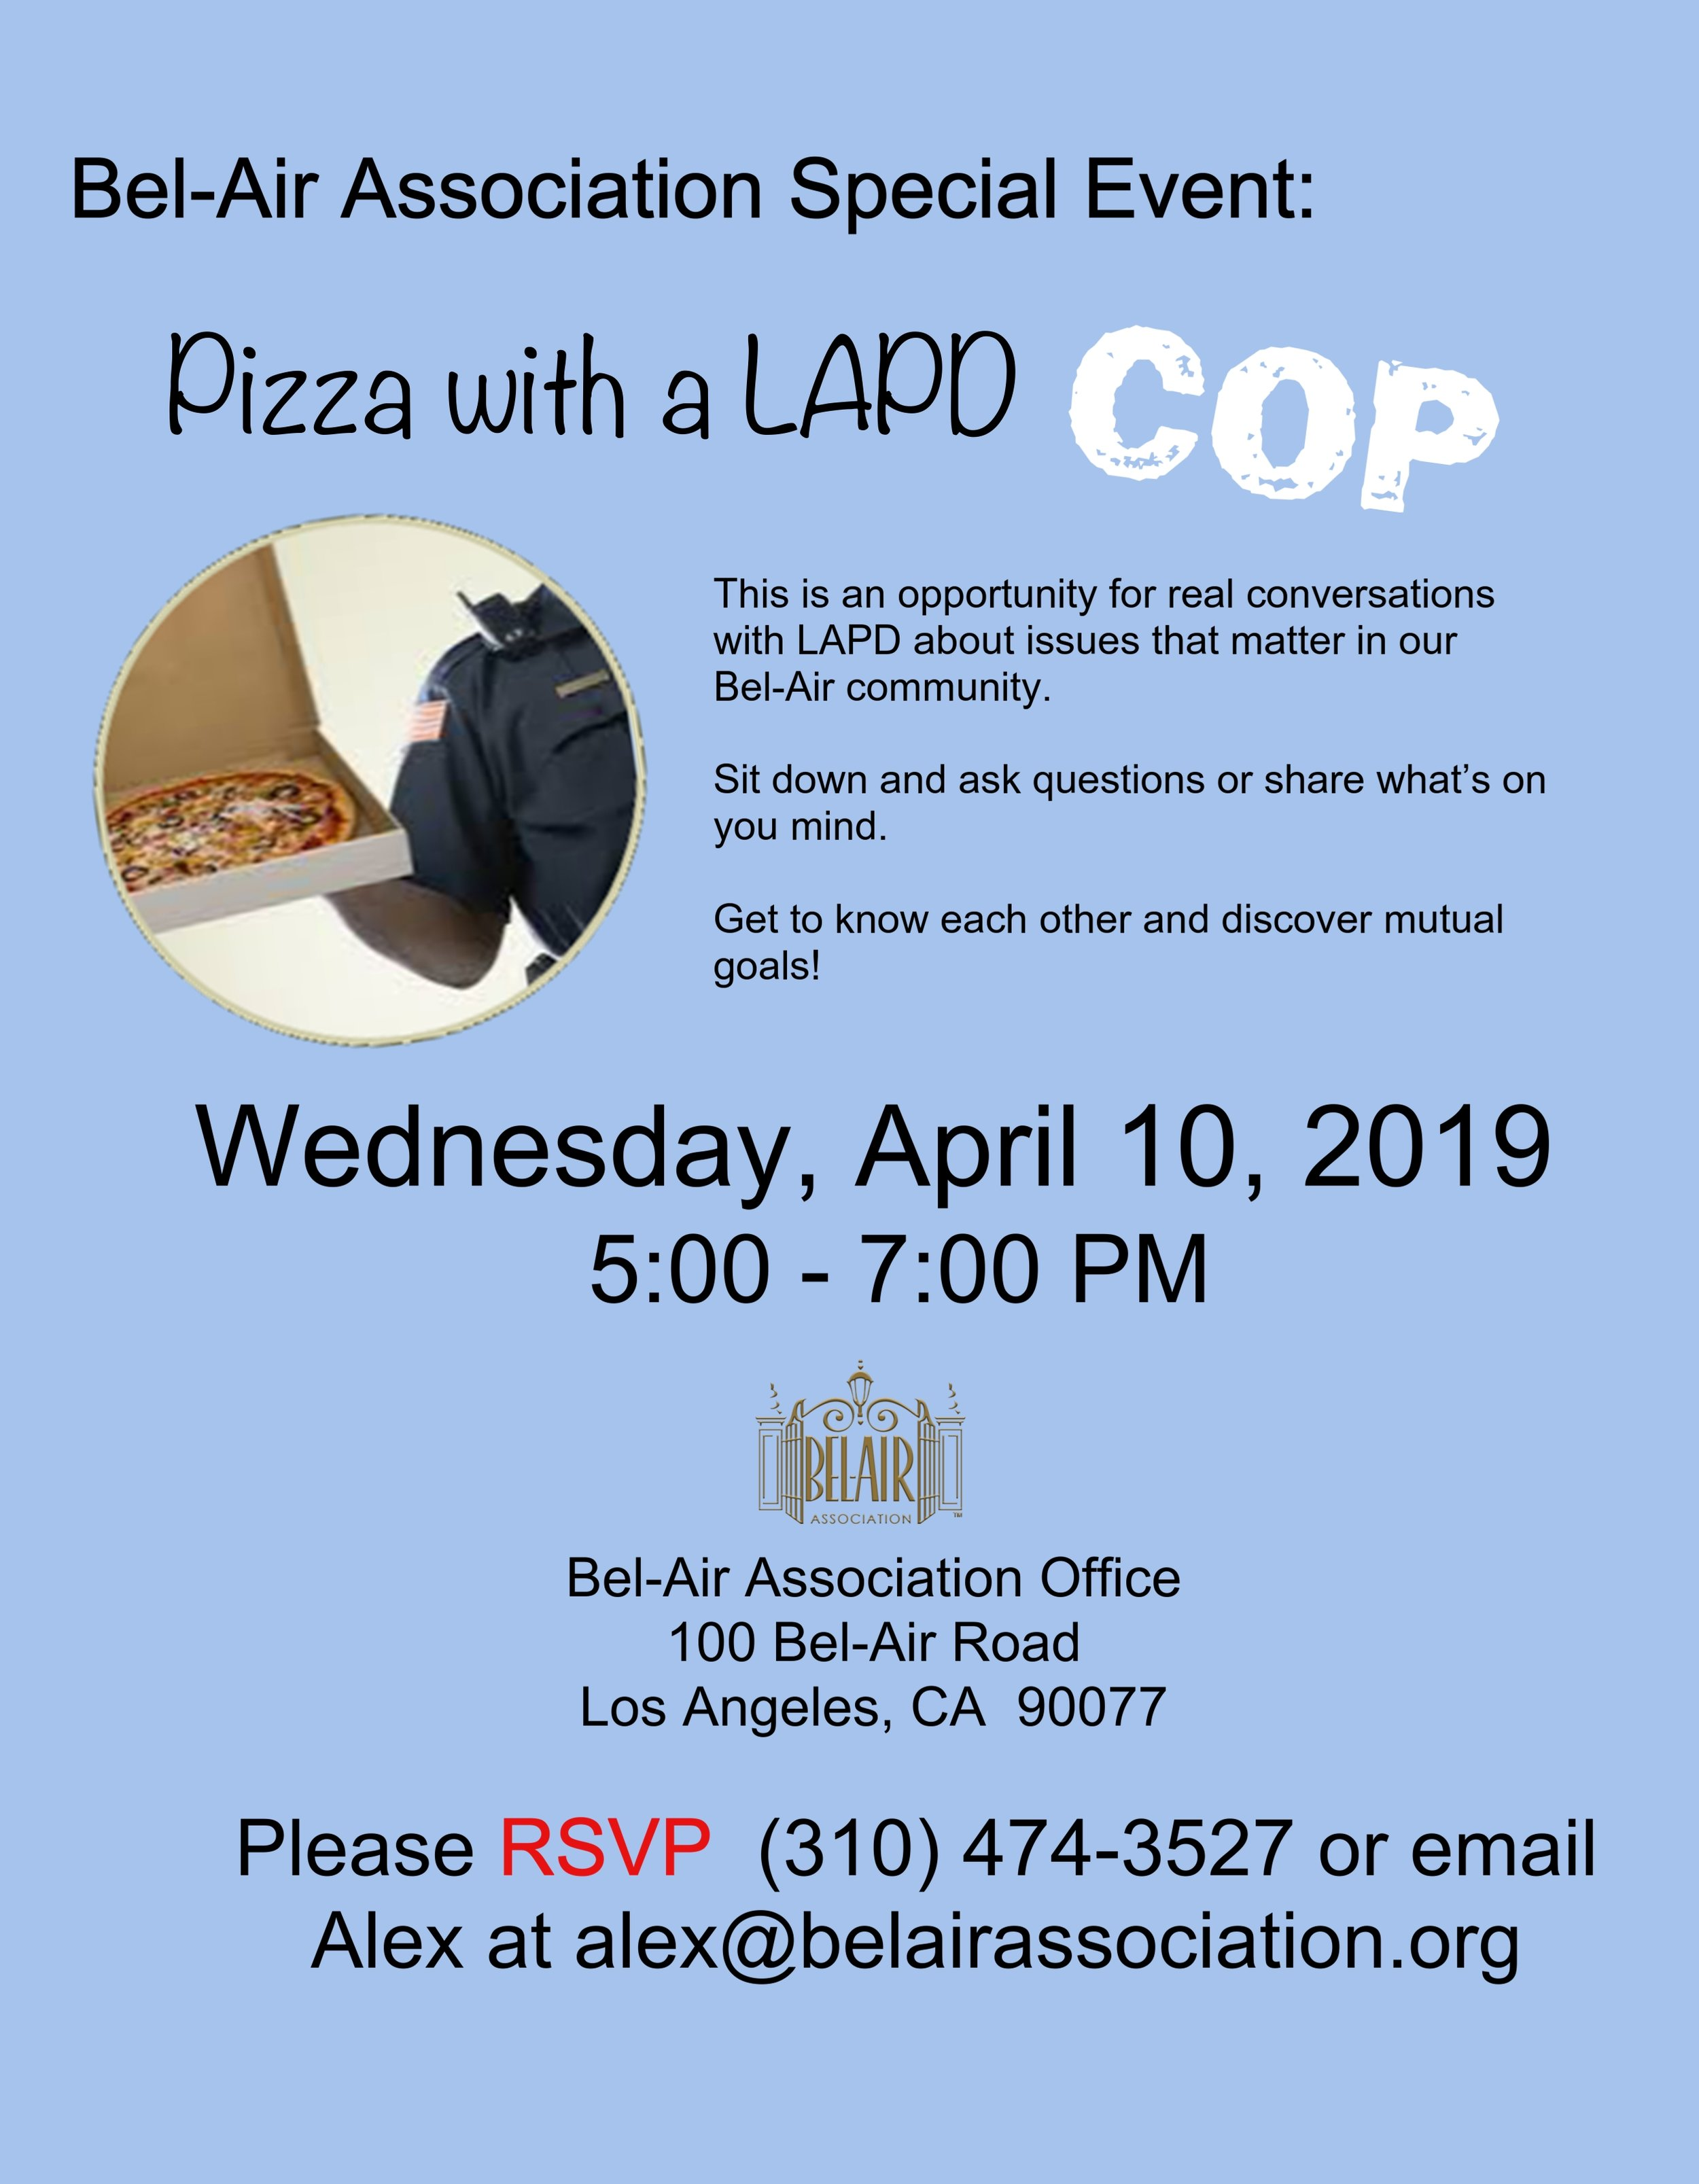 PIzza with a cop.jpg